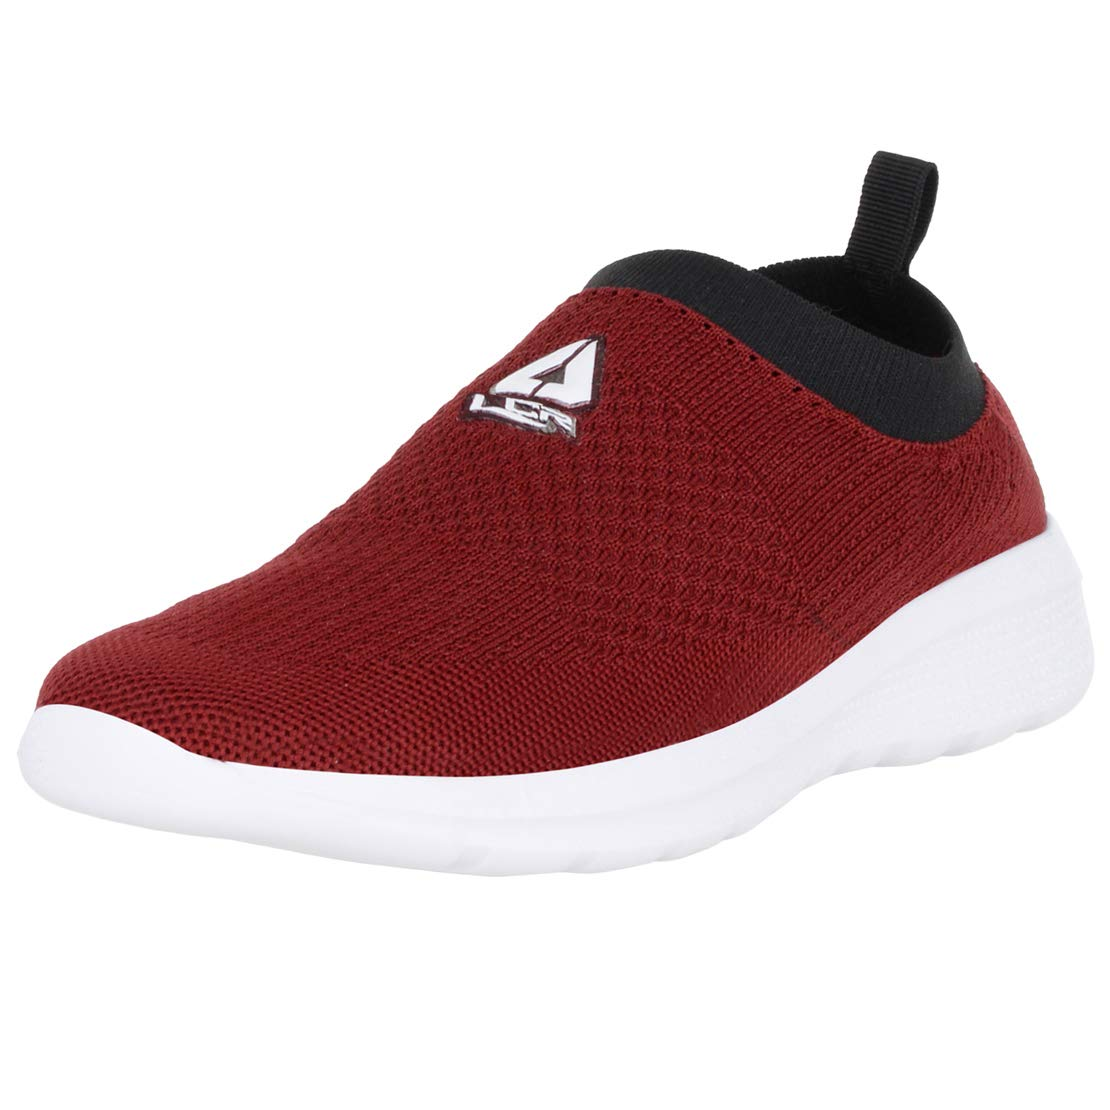 28fb263dc0f Lancer Men s Lifestyle Shoes  Buy Online at Low Prices in India - Amazon.in